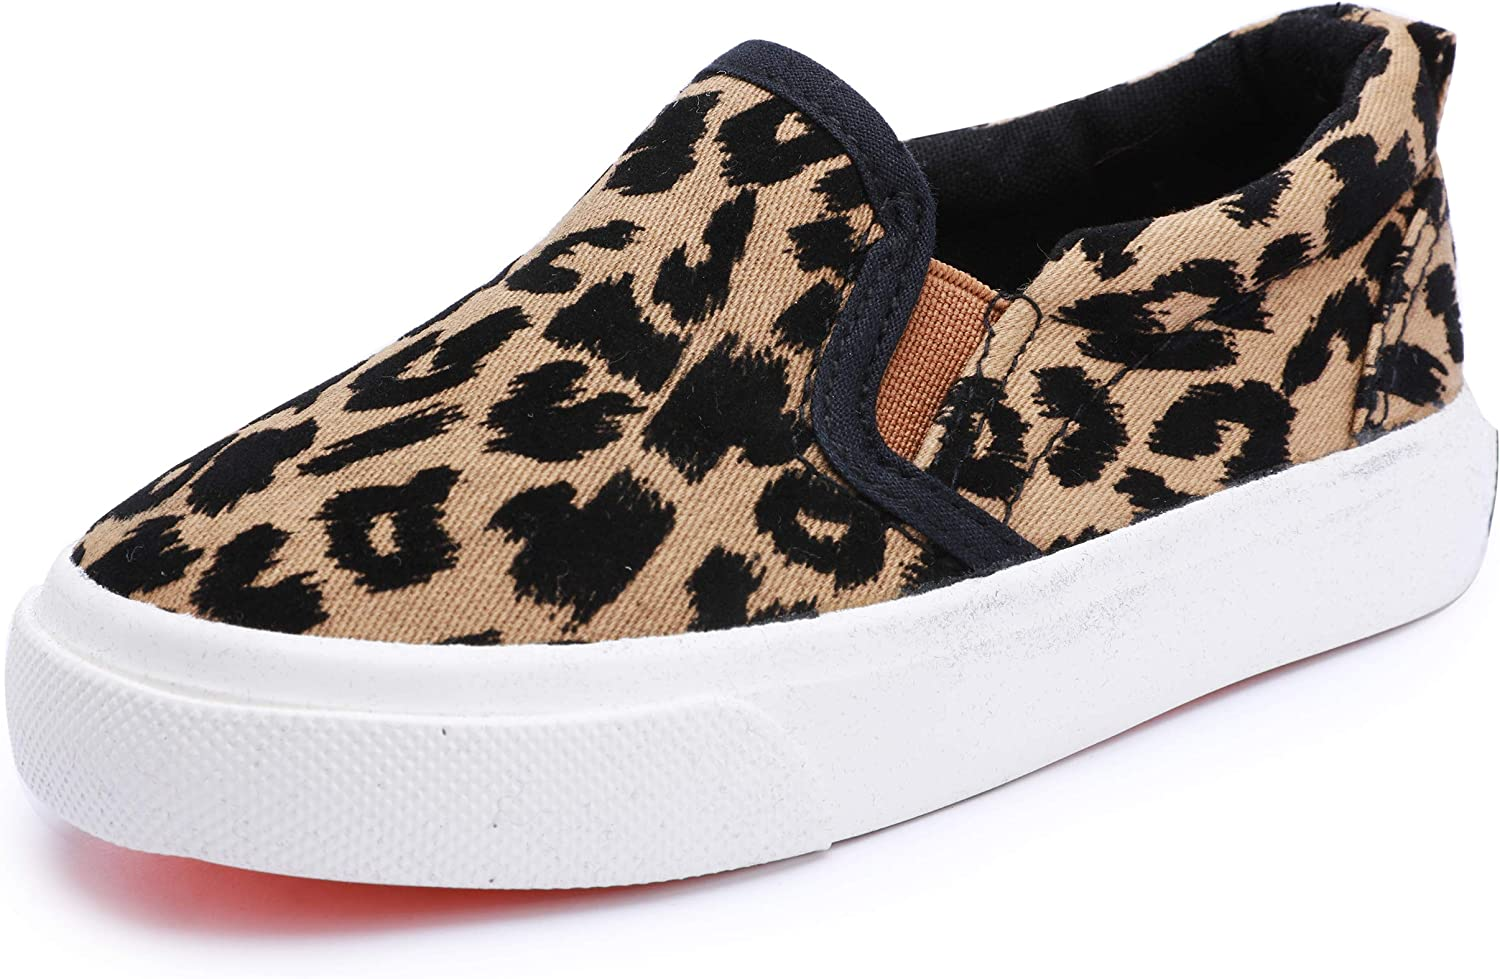 Boy's Girl's Canvas Sneakers Casual Leopard Print Slip-on Loafer Shoes Flats(Toddler/Little Kid)